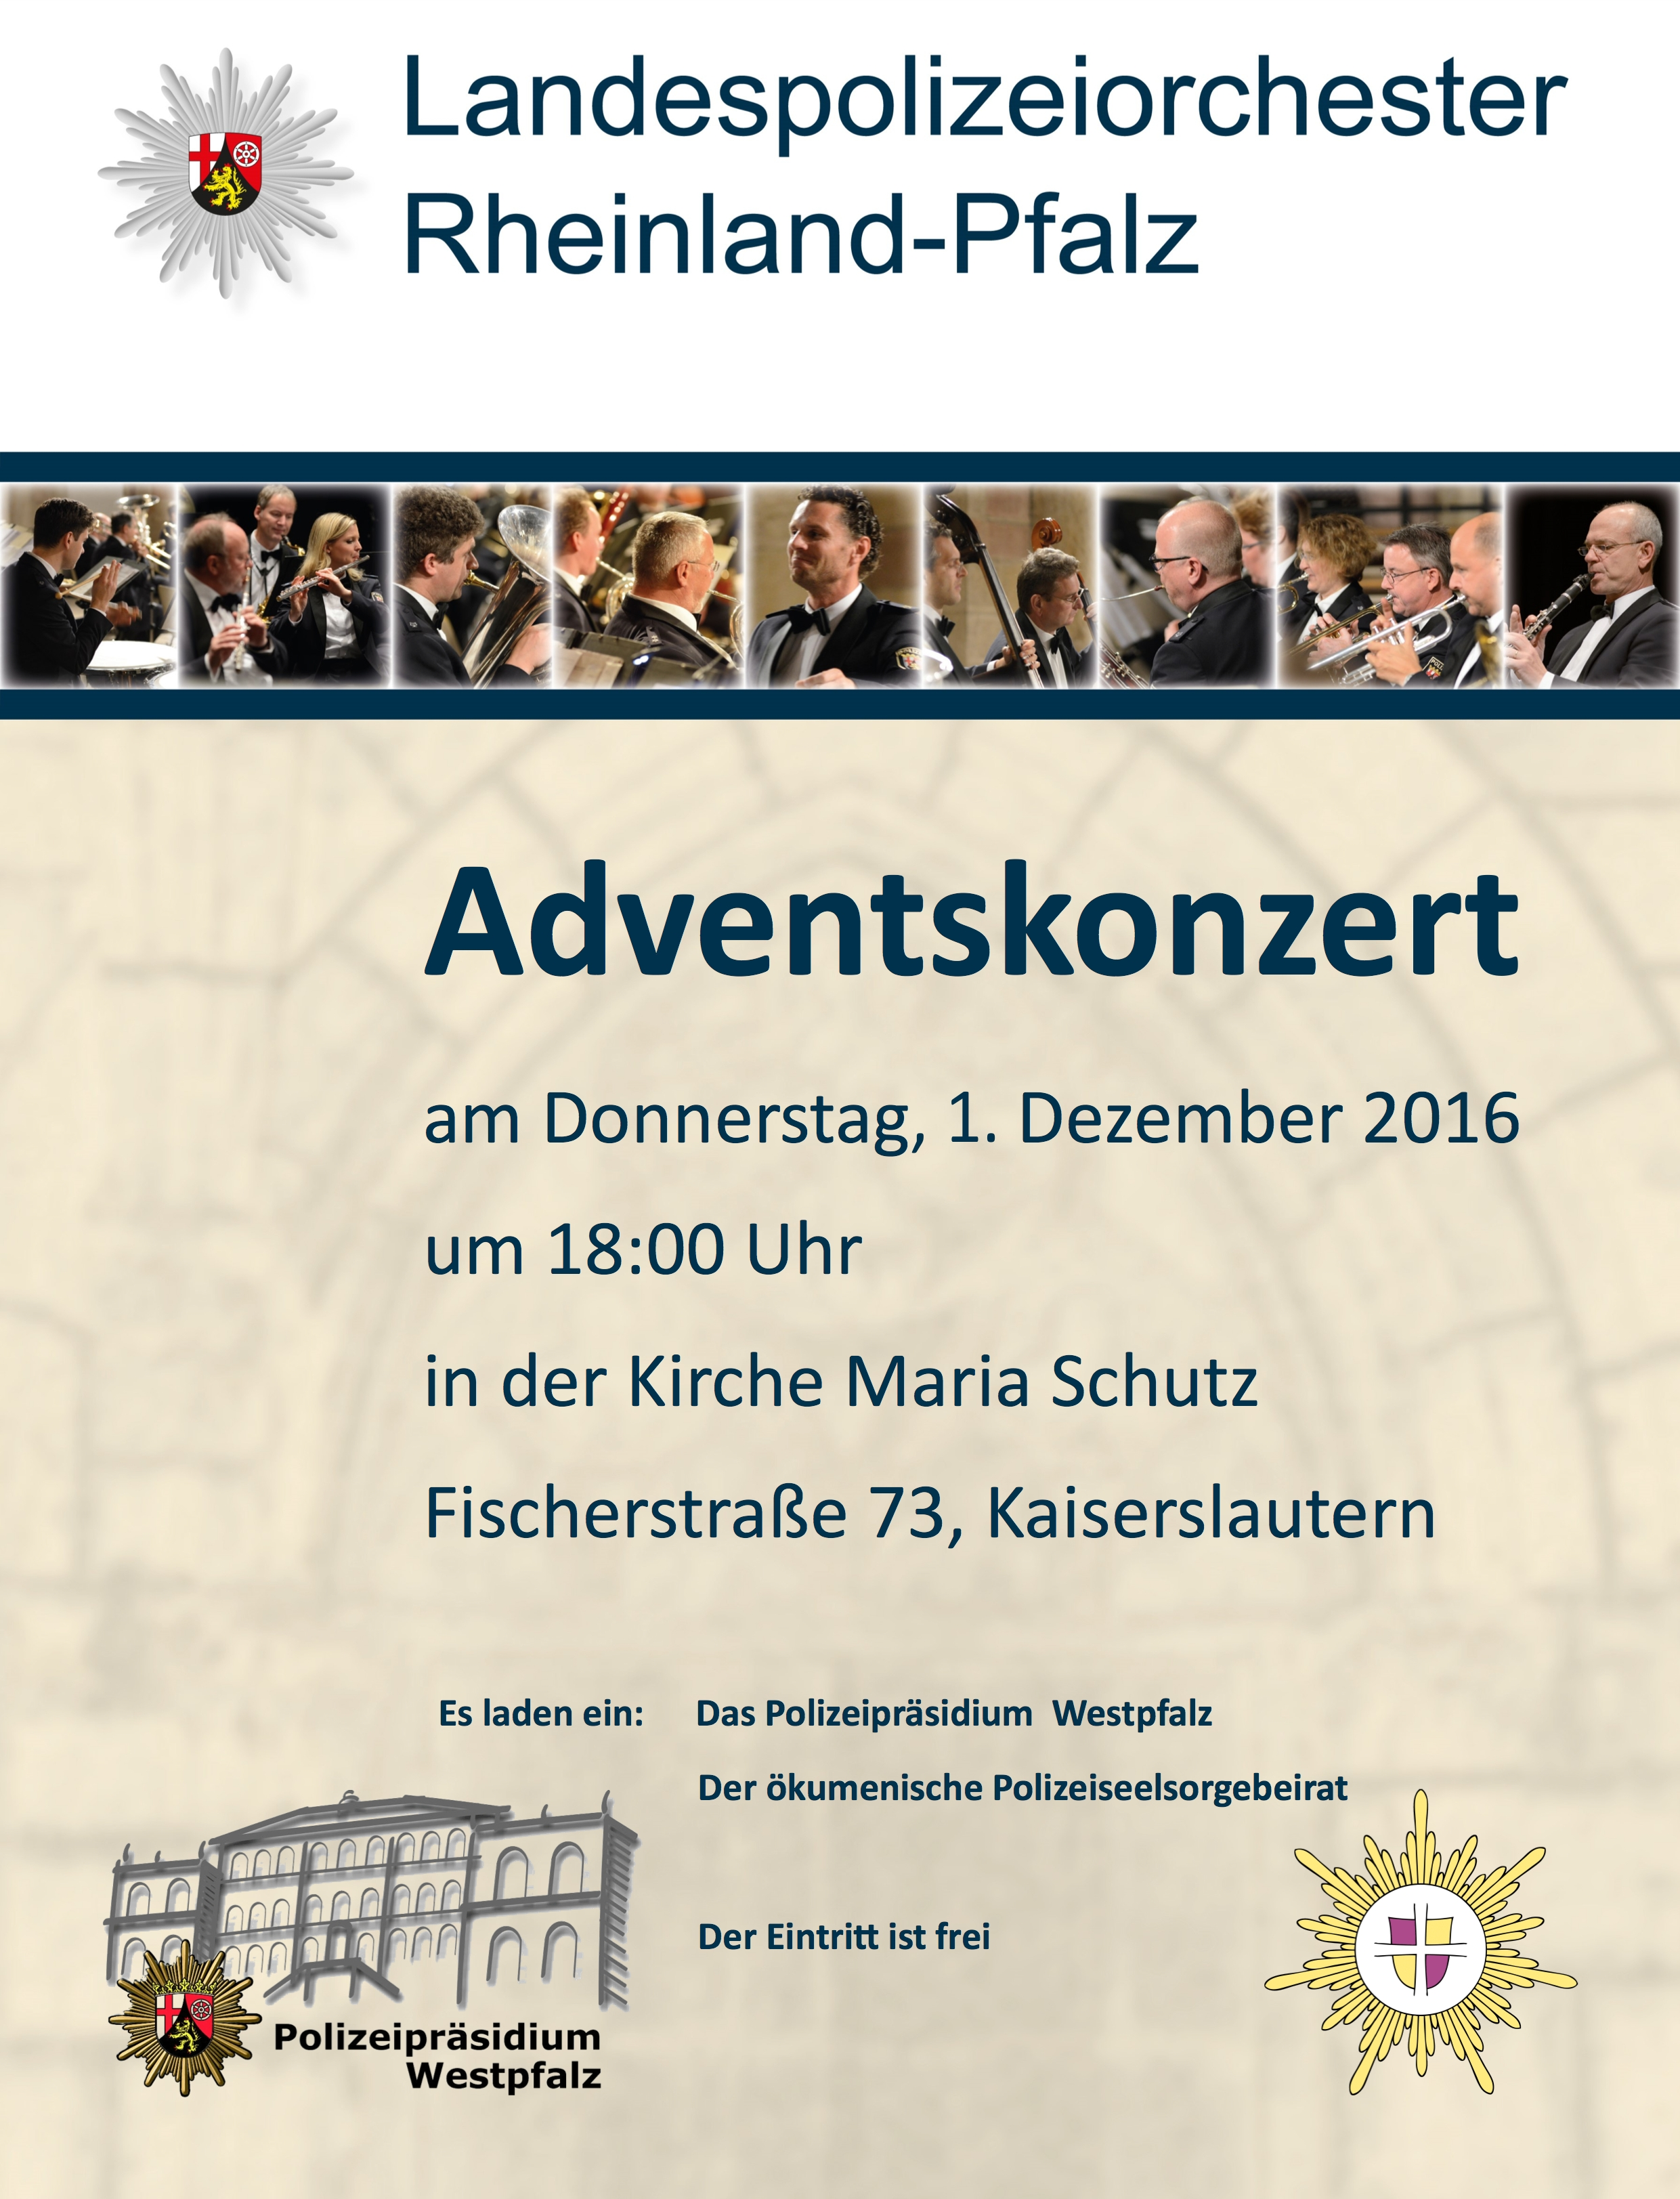 Plakat-Adventskonzert-2016-12-0-final.jpg